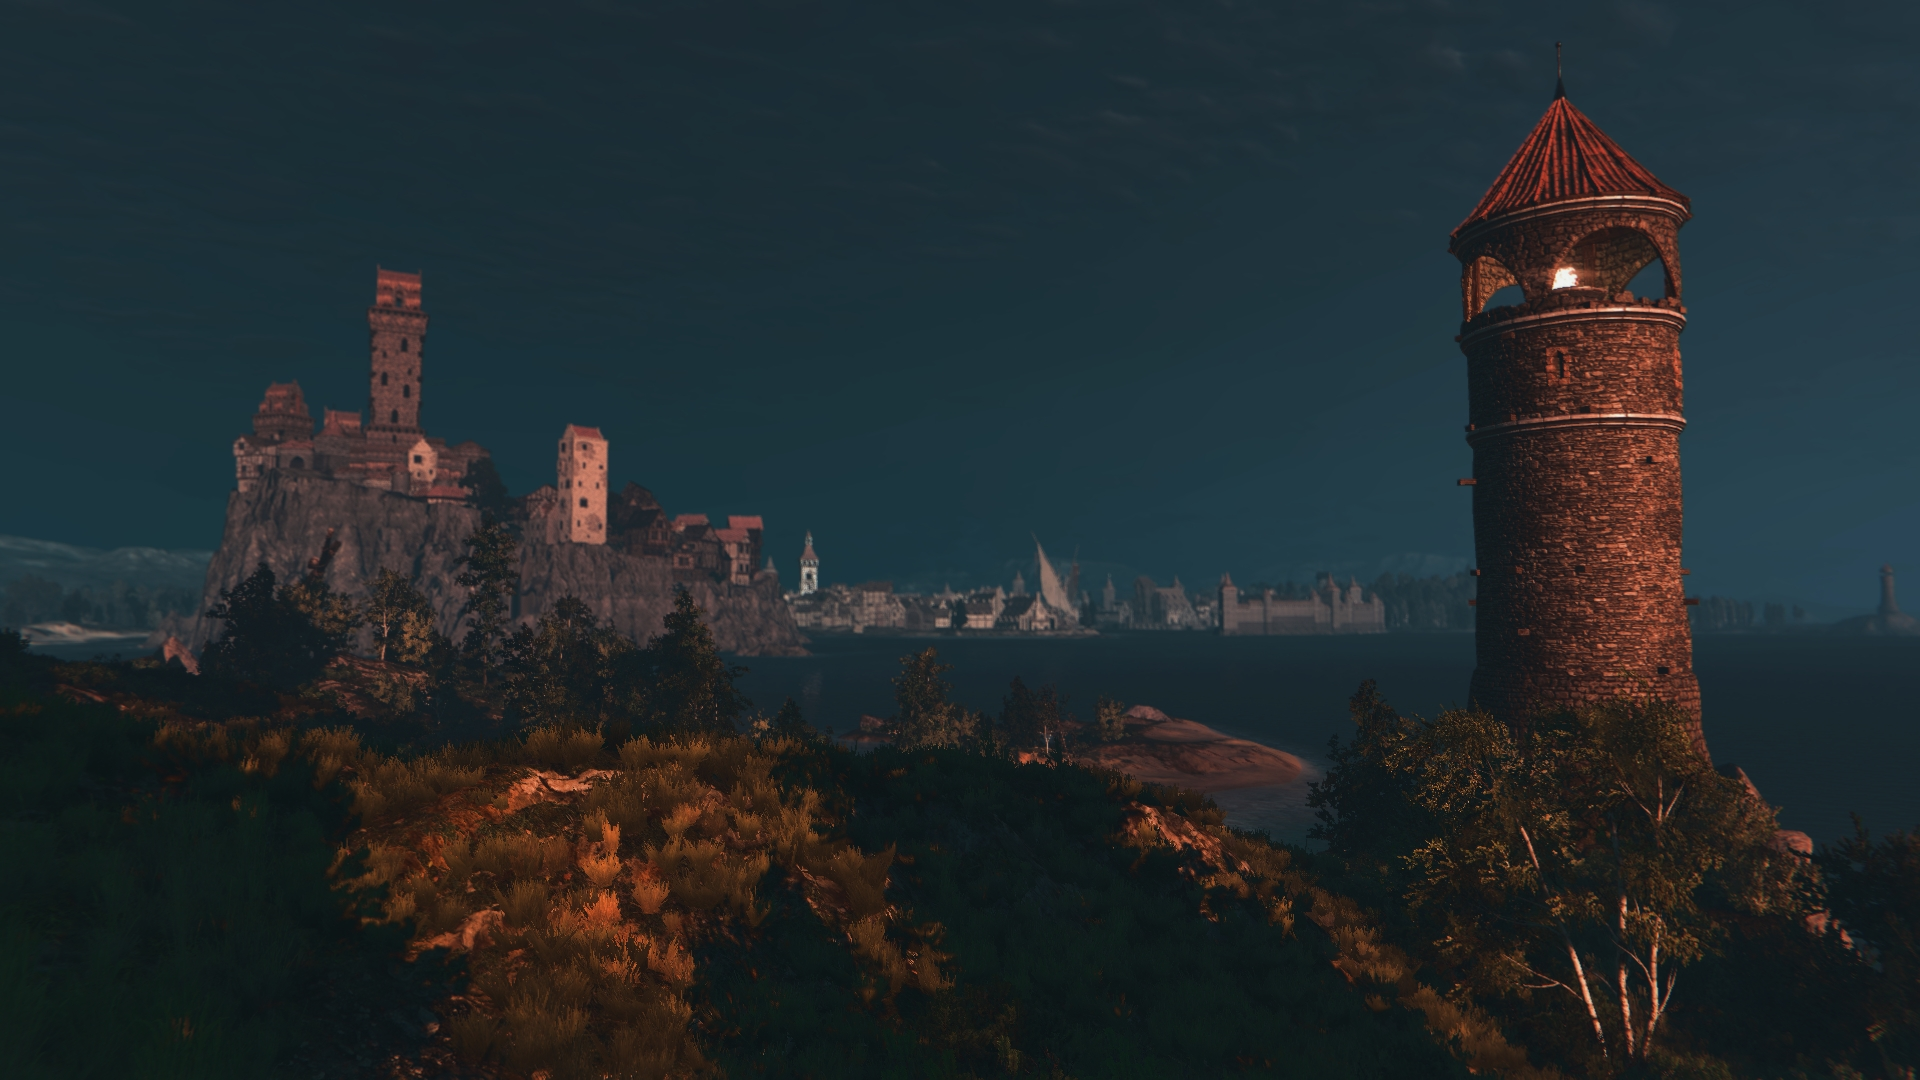 Witcher 3 Lighthouse